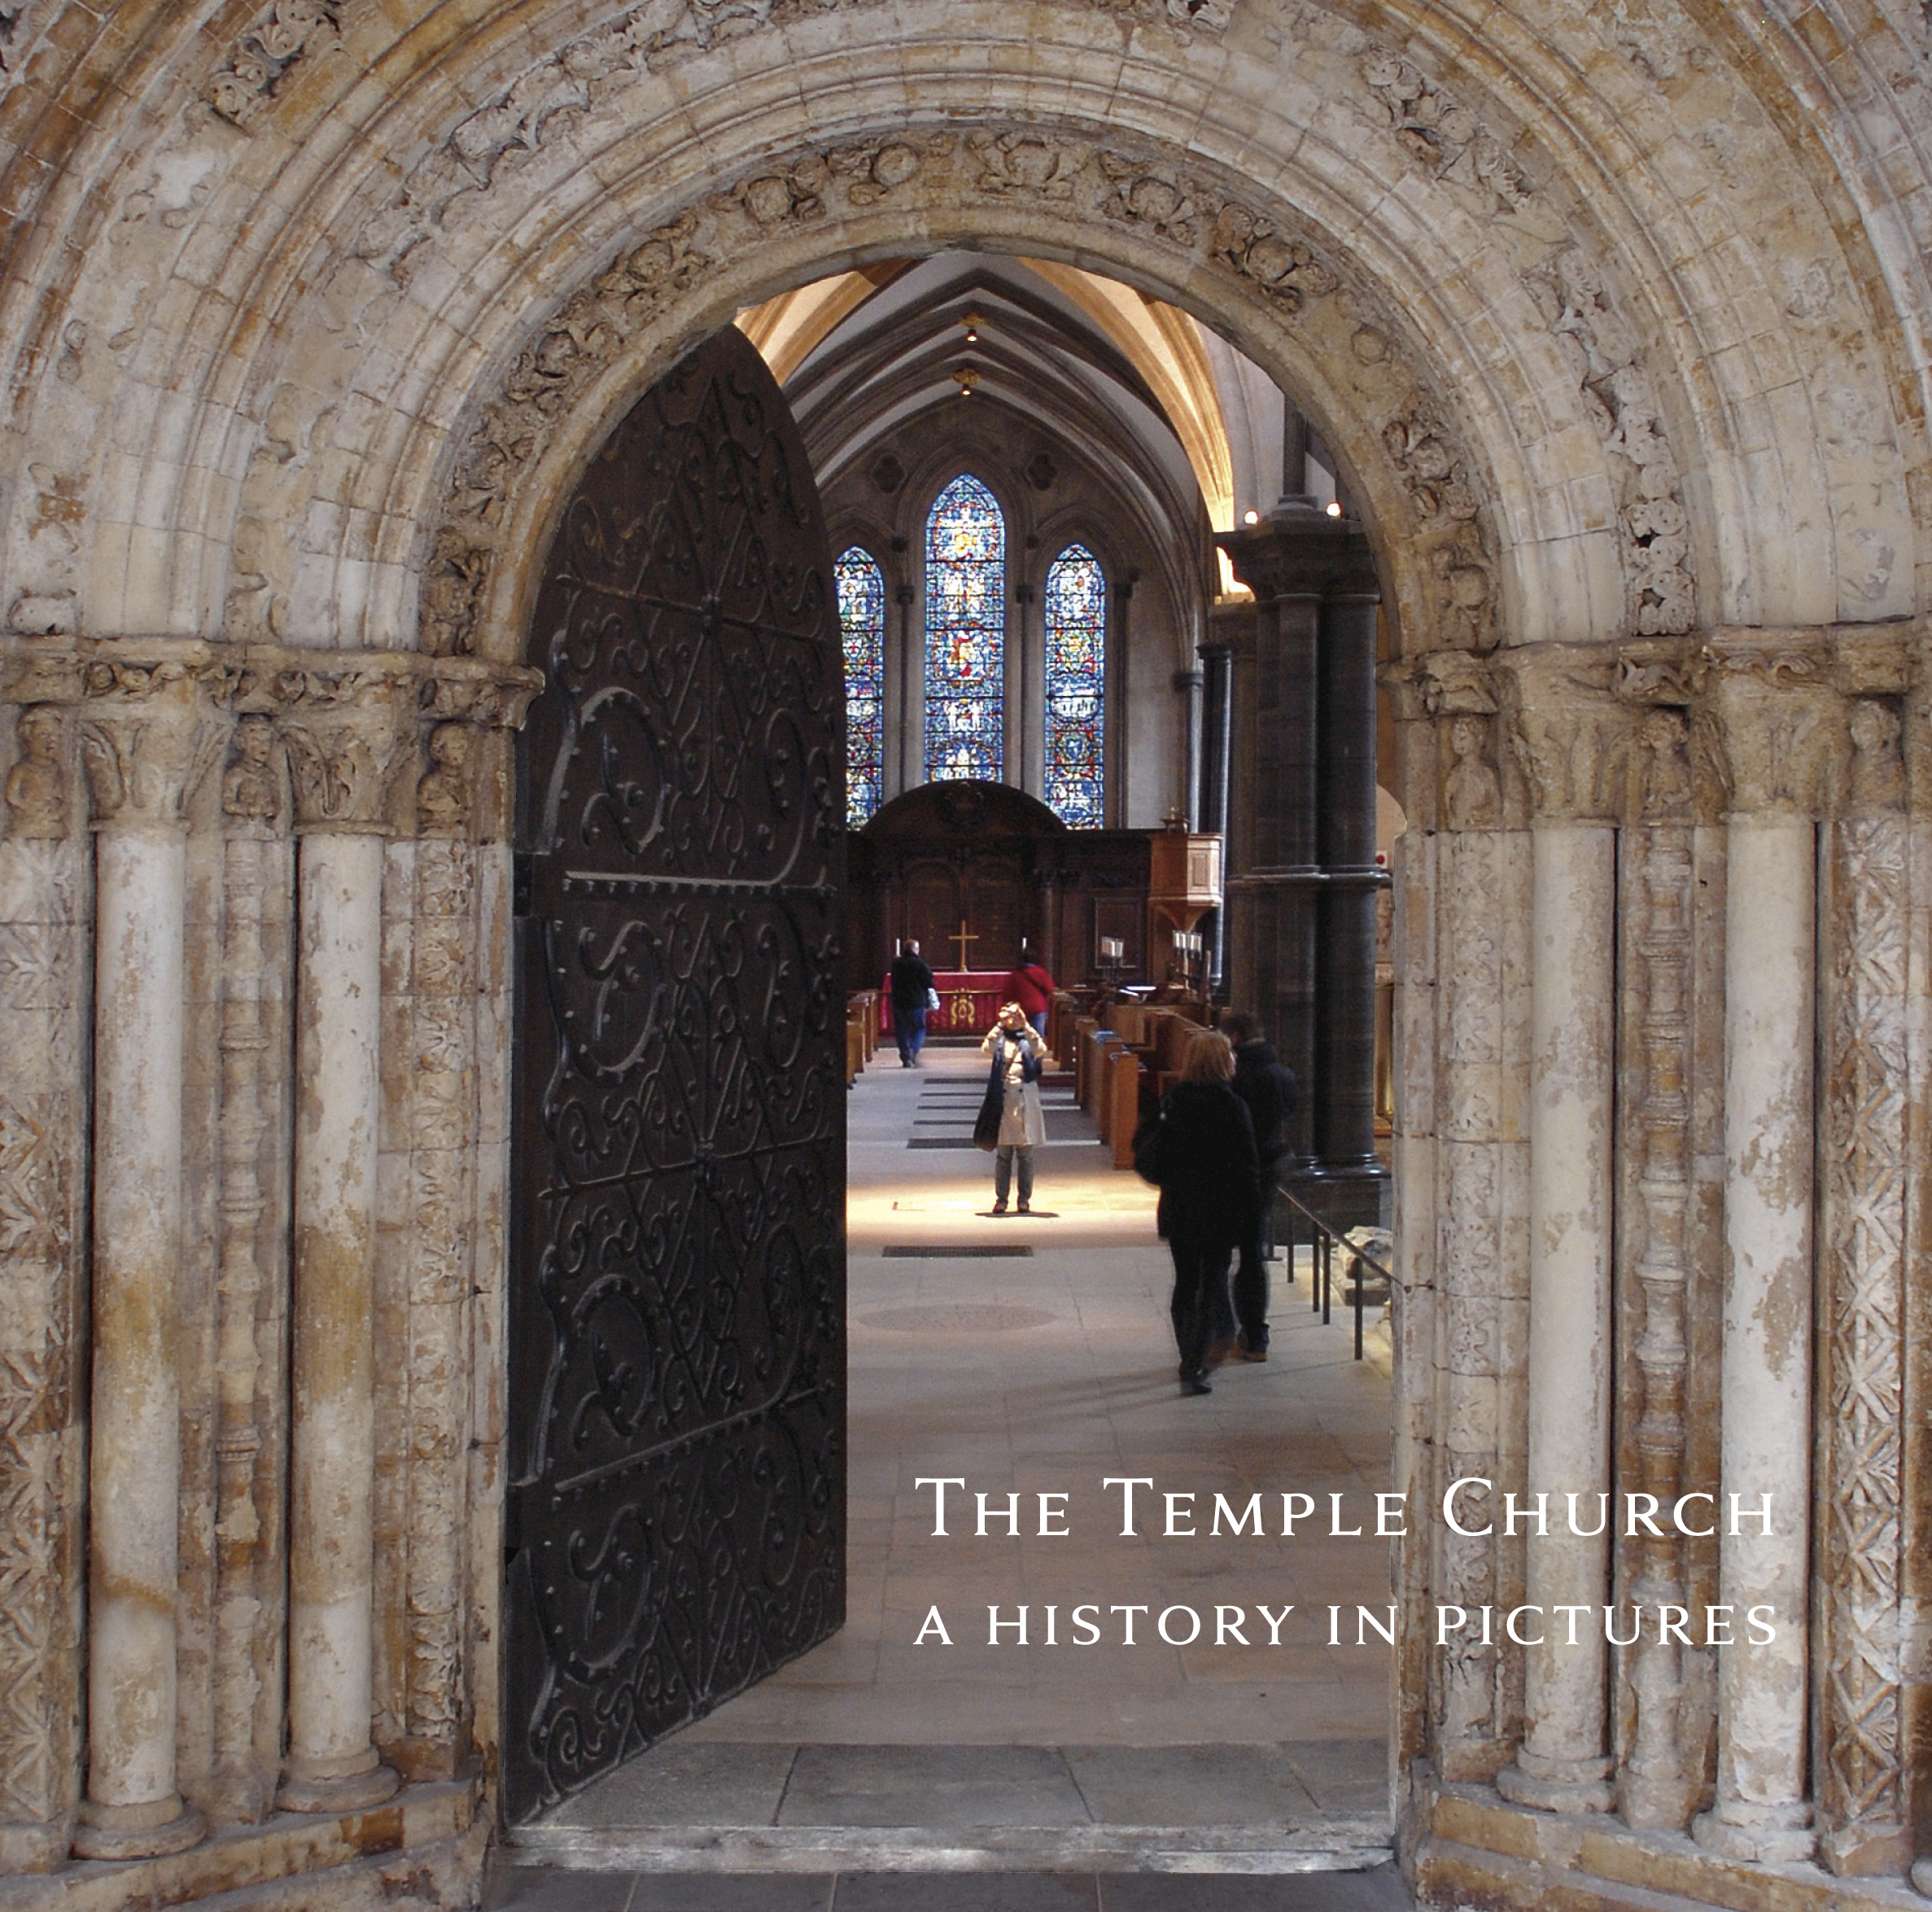 Temple Church, a History in Pictures